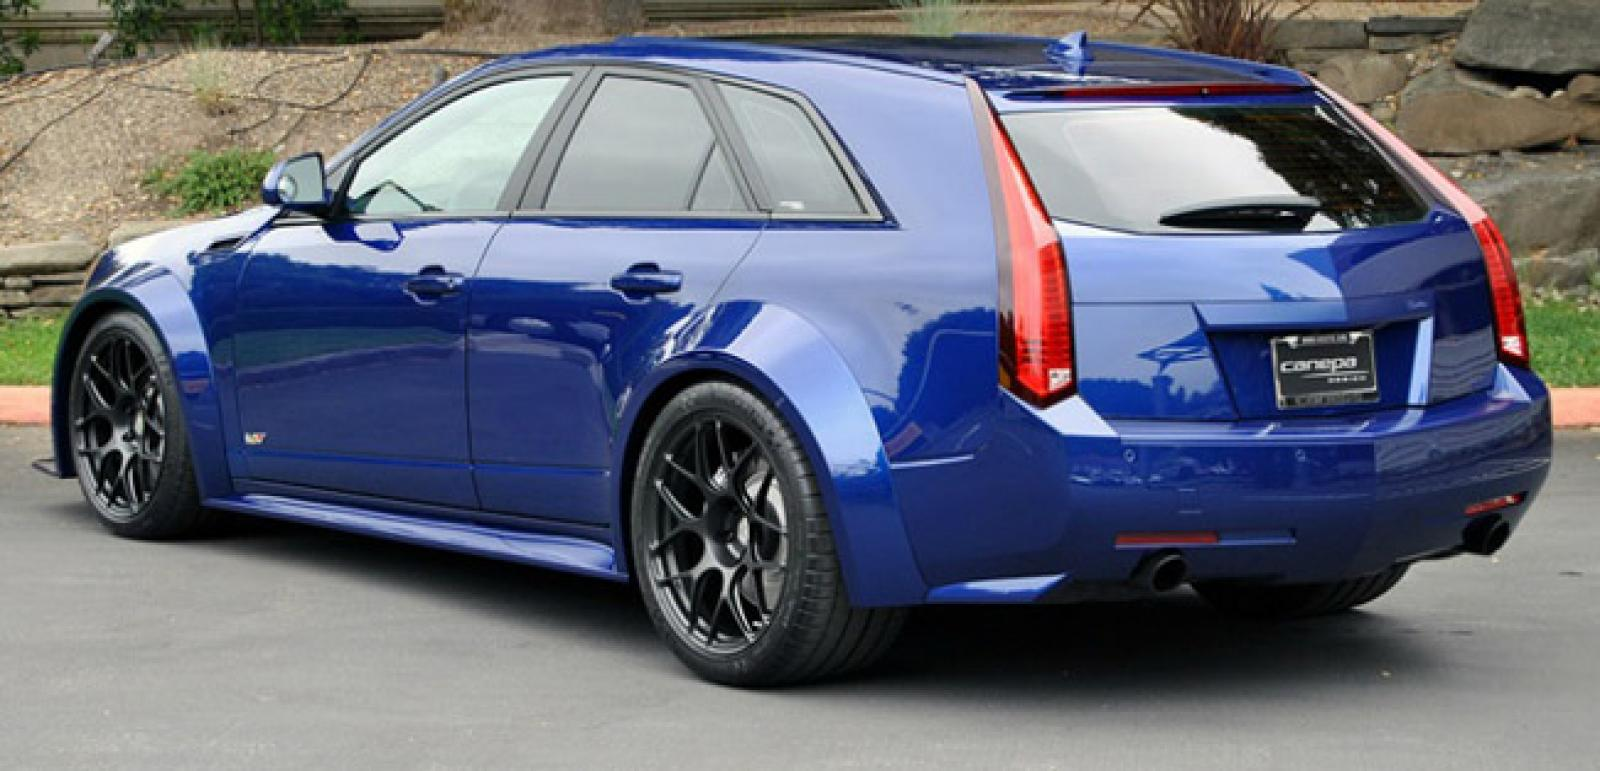 2014 Cadillac Cts V Wagon Blue 200 Interior And Exterior Images